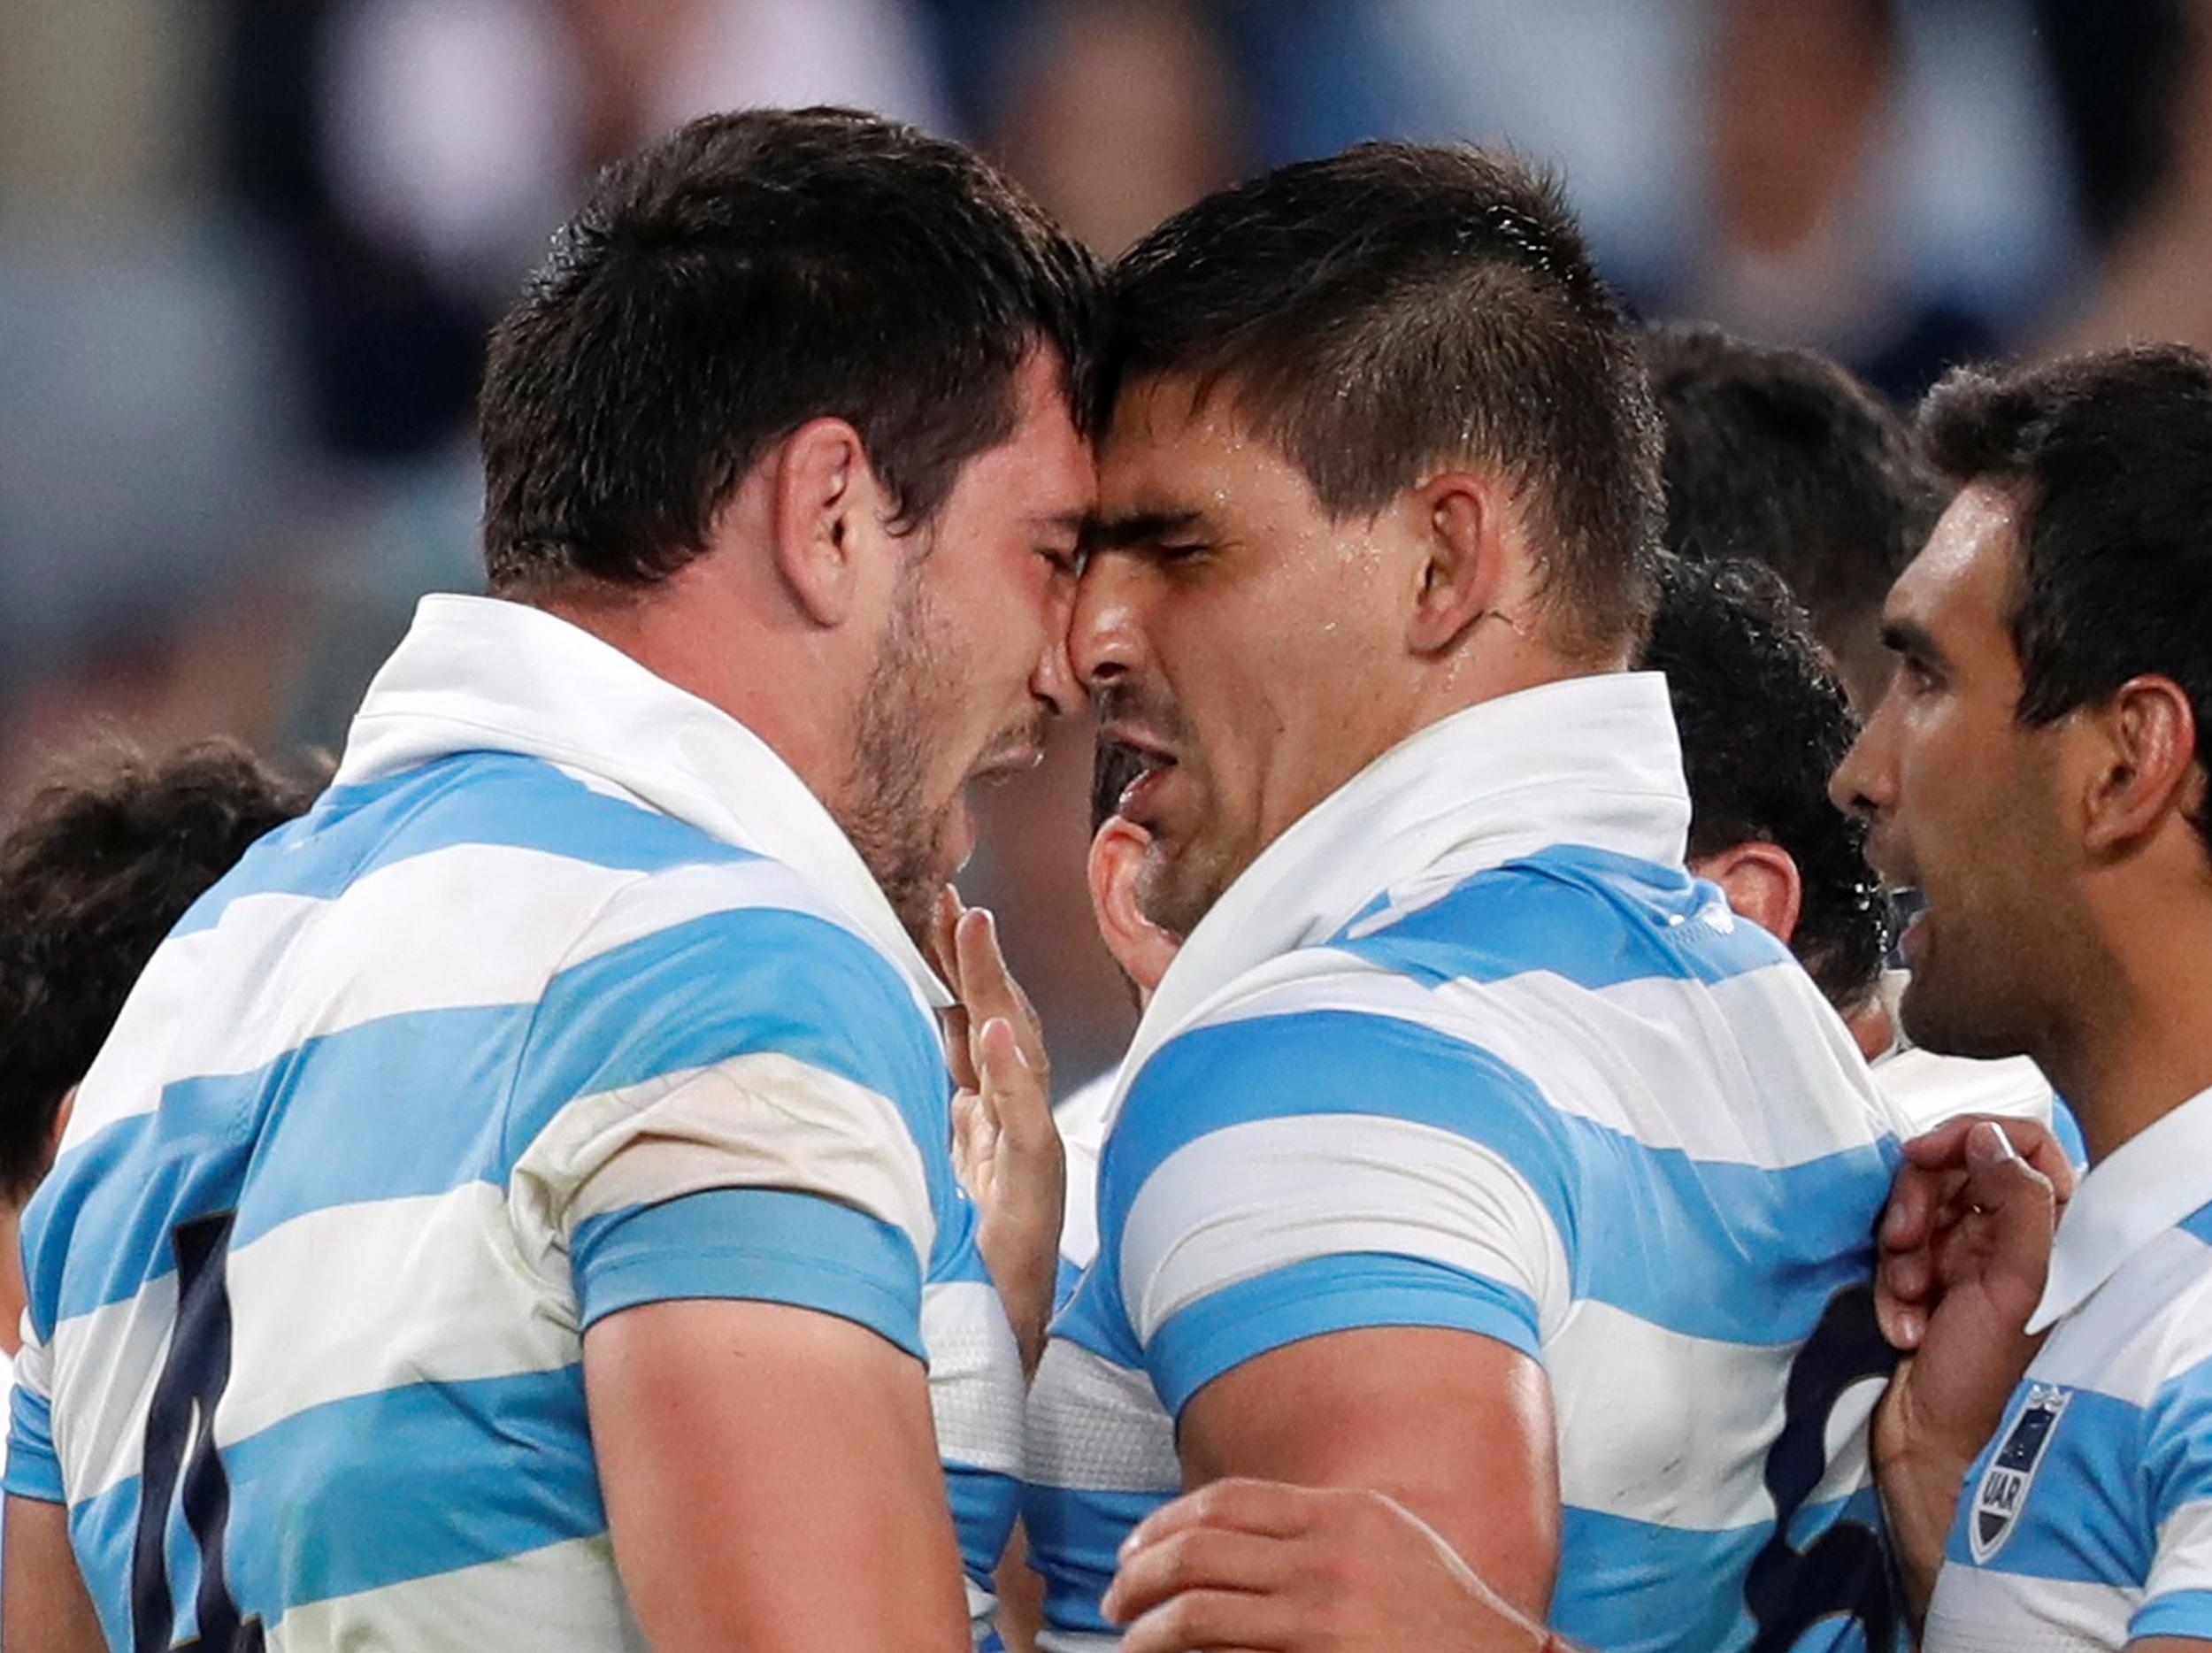 Rugby World Cup 2019: Seven stories you may have missed from a breathtaking Super Saturday